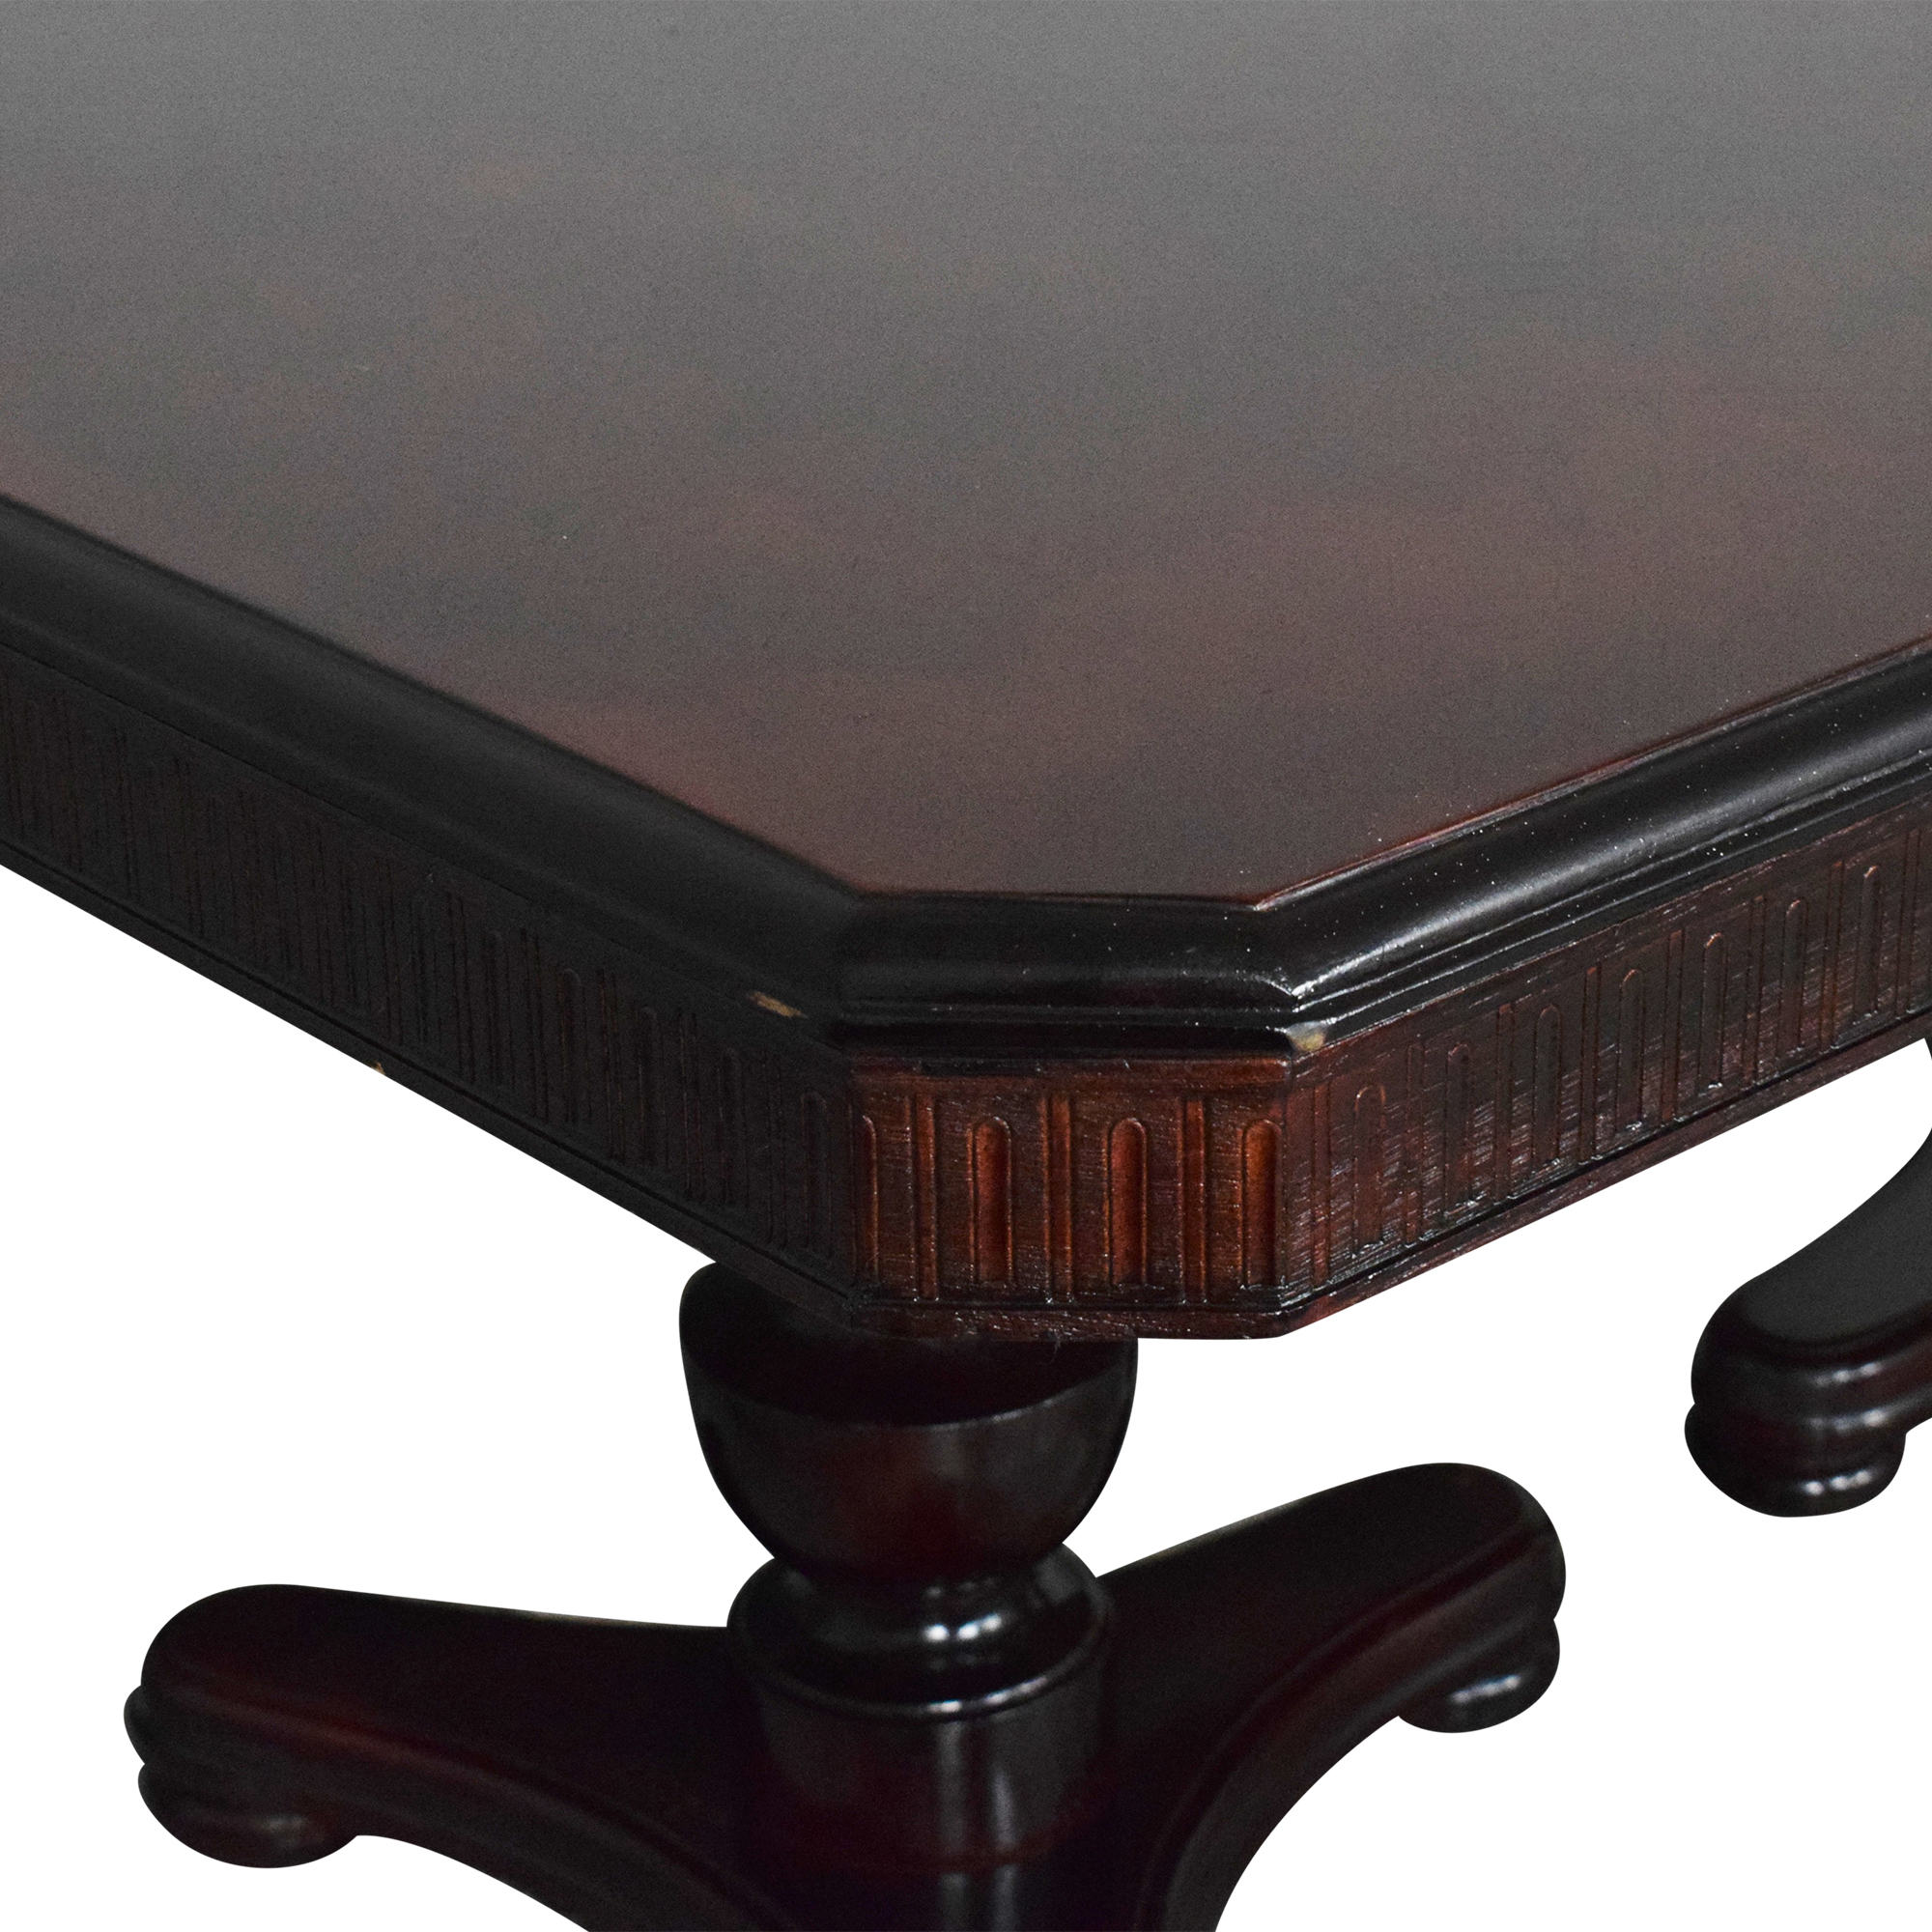 Double Pedestal Extendable Dining Table second hand